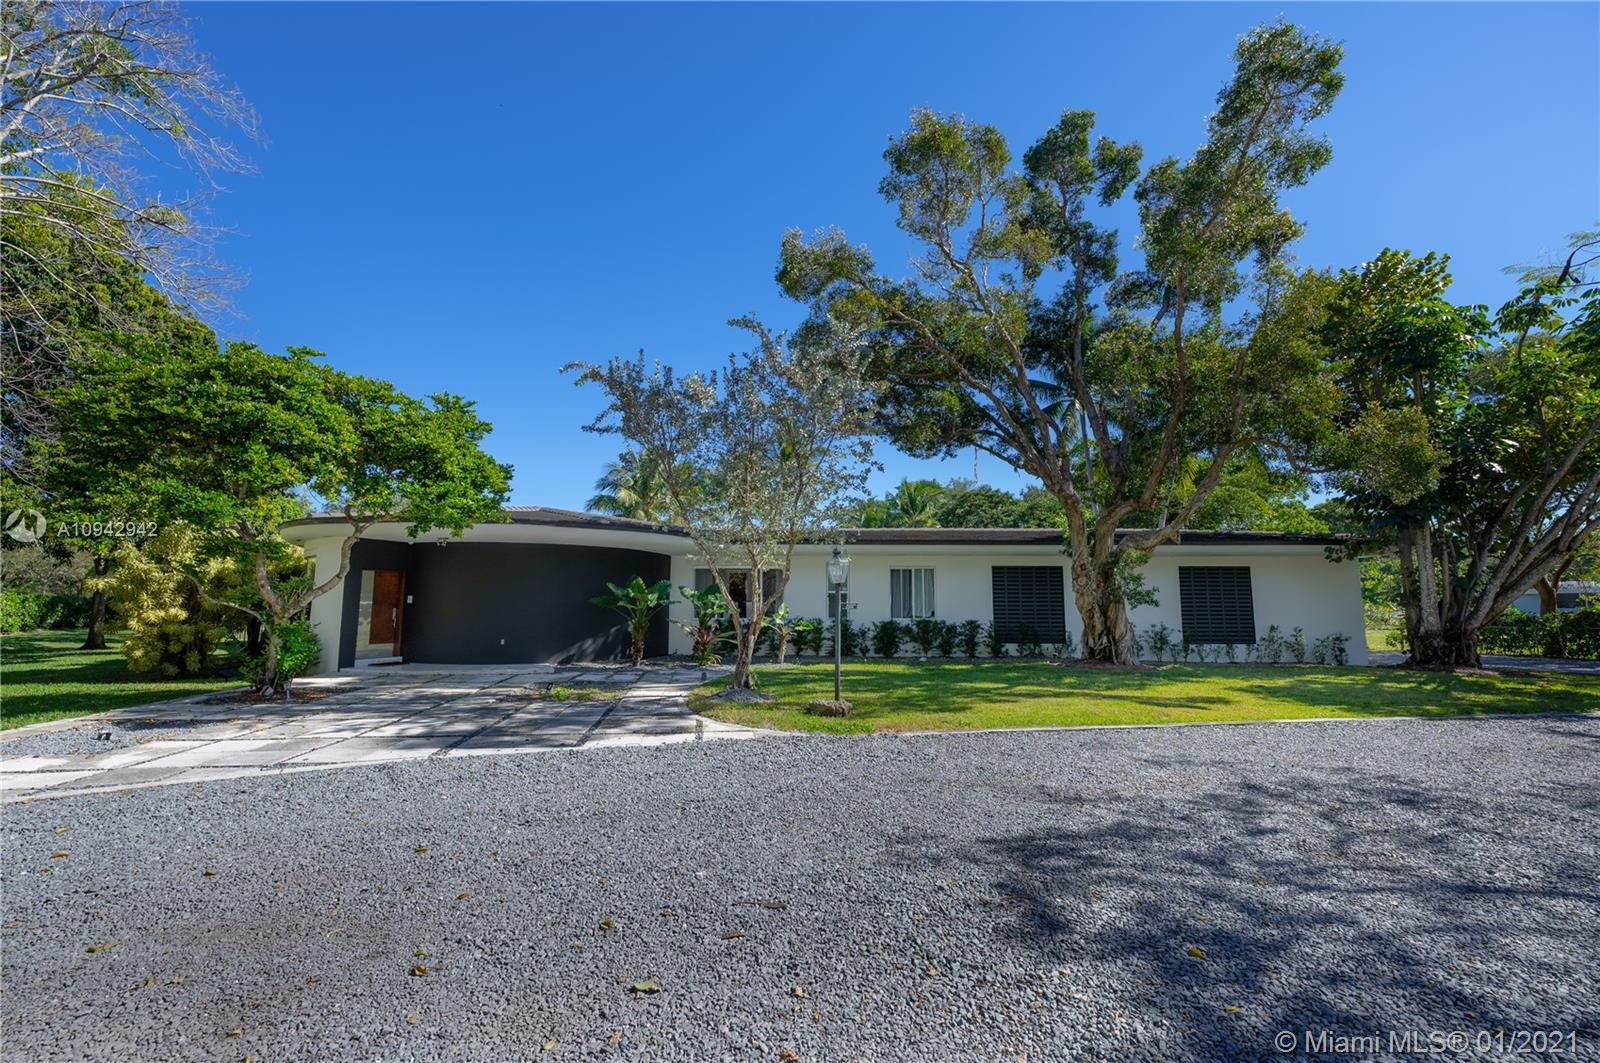 Fabulous one-story corner home sitting on a 1+ acre lot in the heart of Pinecrest. Located in Town &